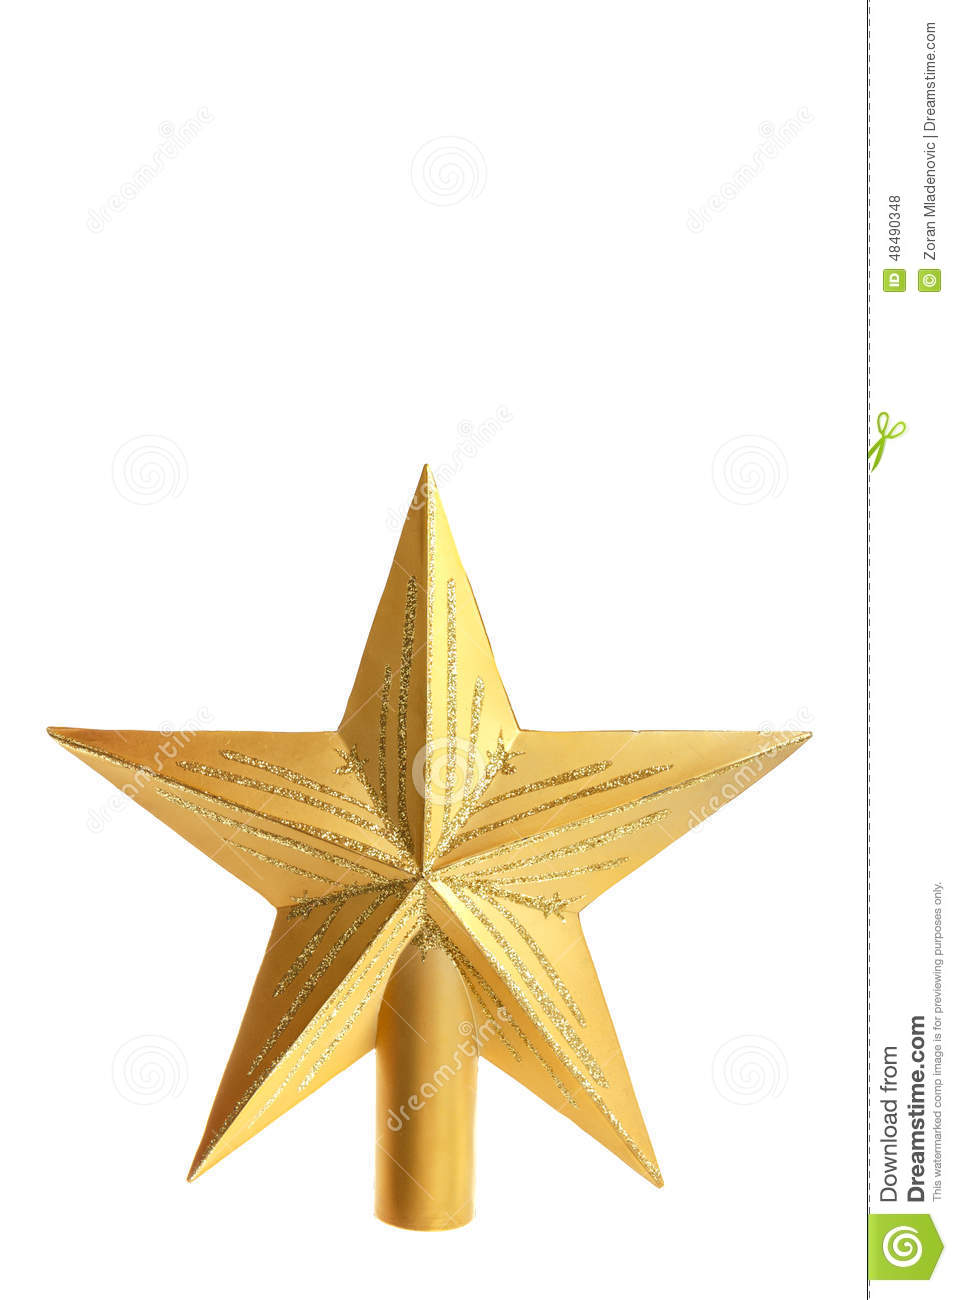 Decorative Yellow Star For Top Of Christmas Tree Stock Photo ...